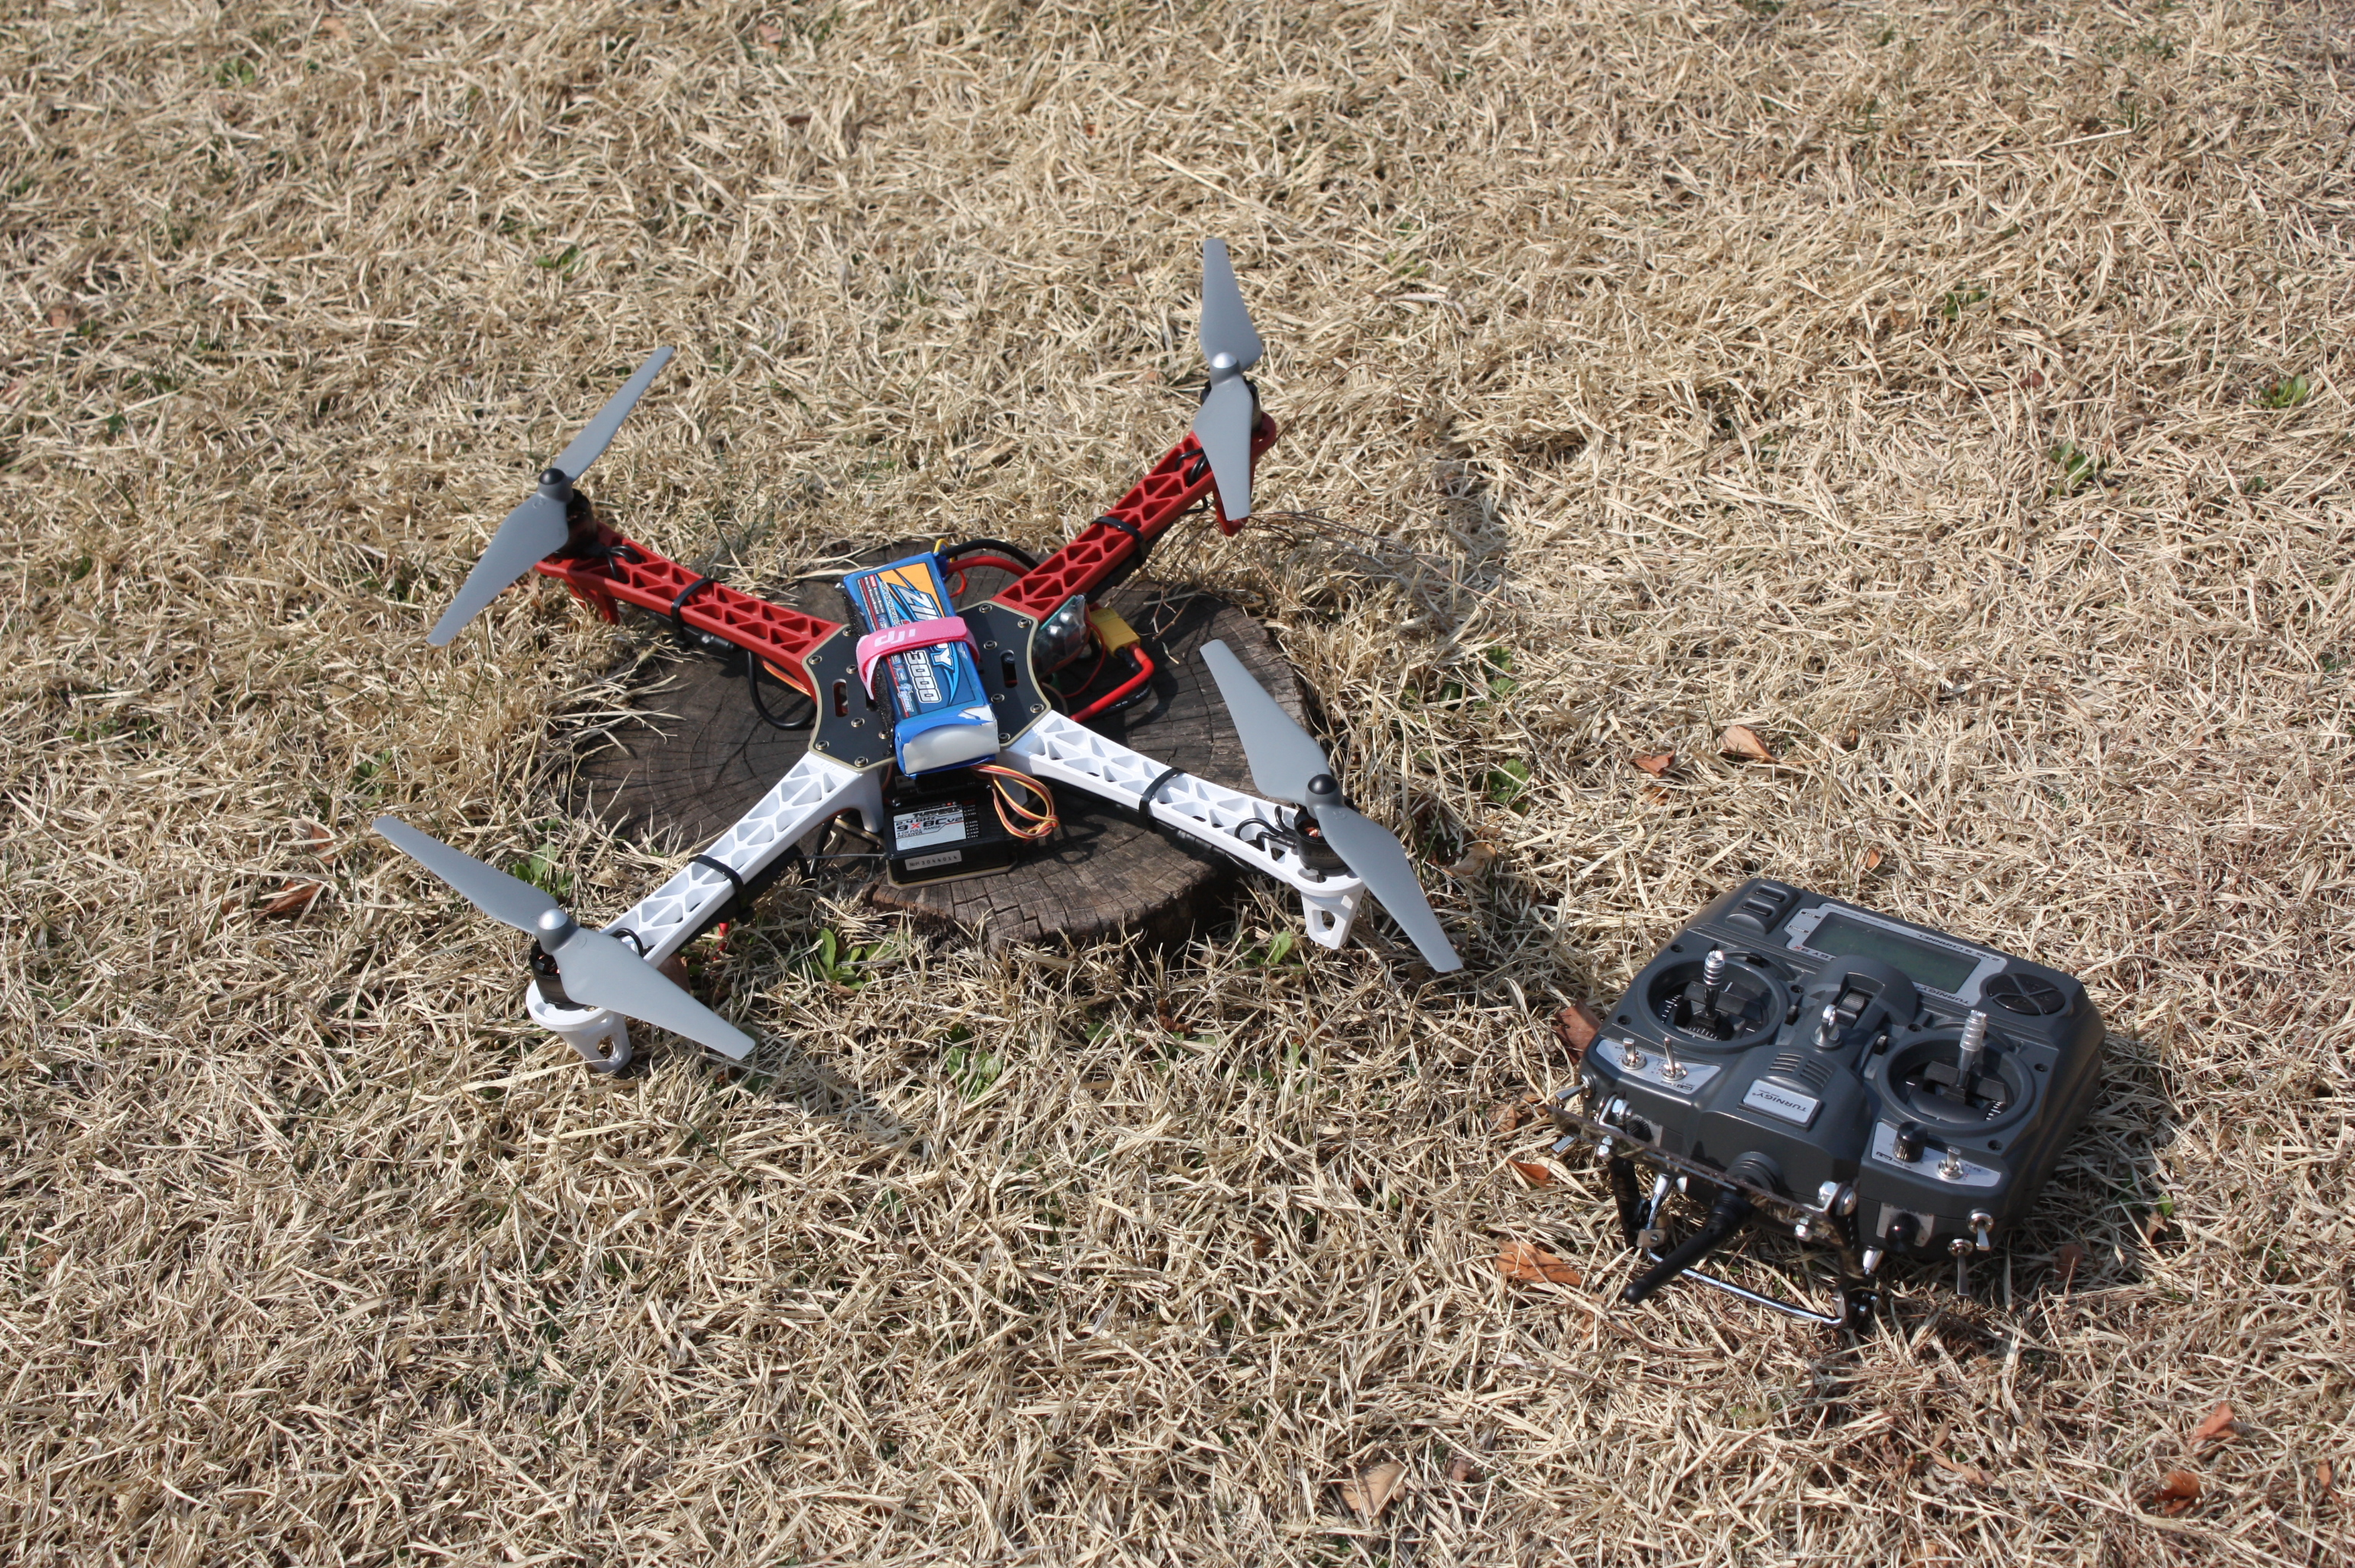 Build My Own Quadcopter – With APM and DJI F450 Flame Wheel